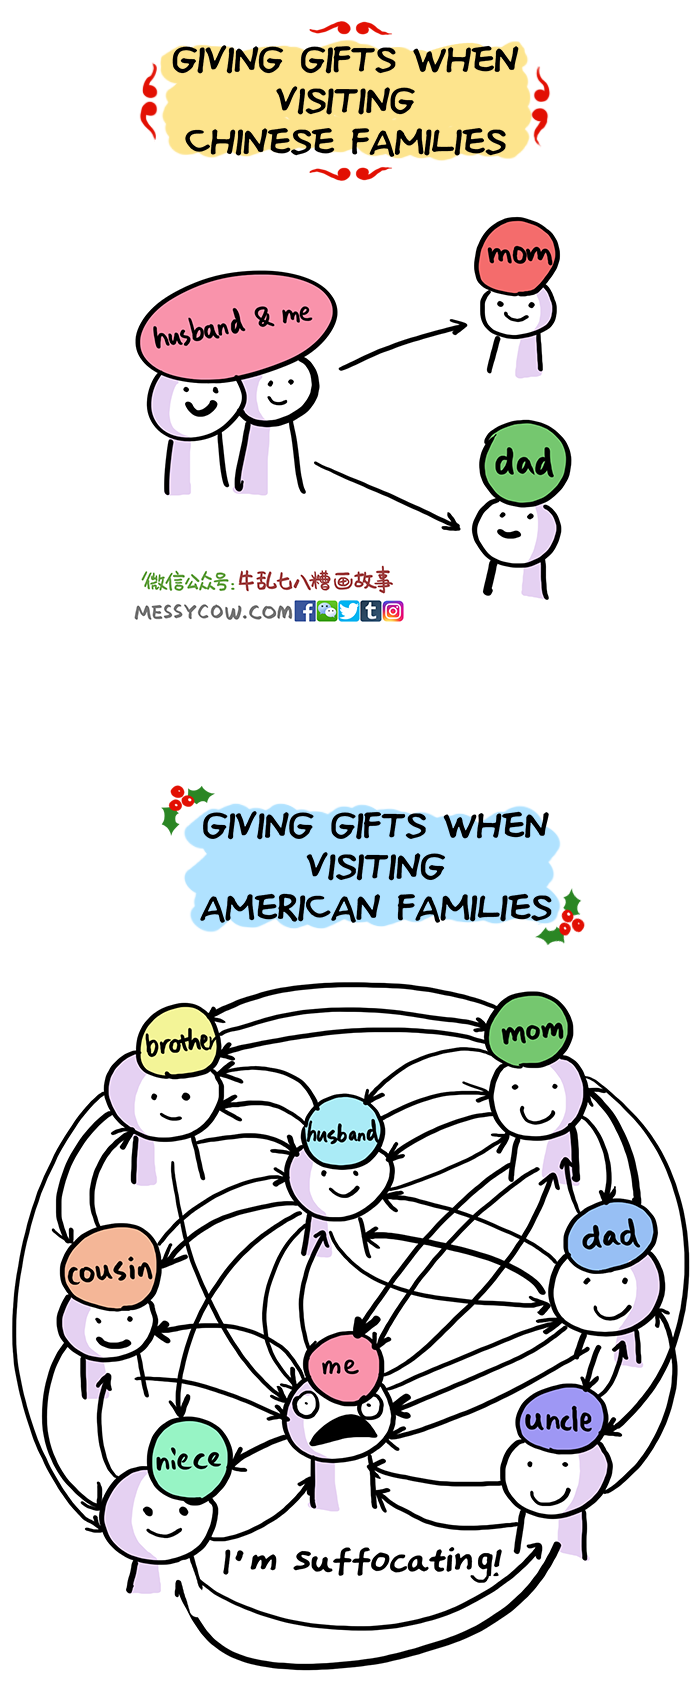 givinggifts